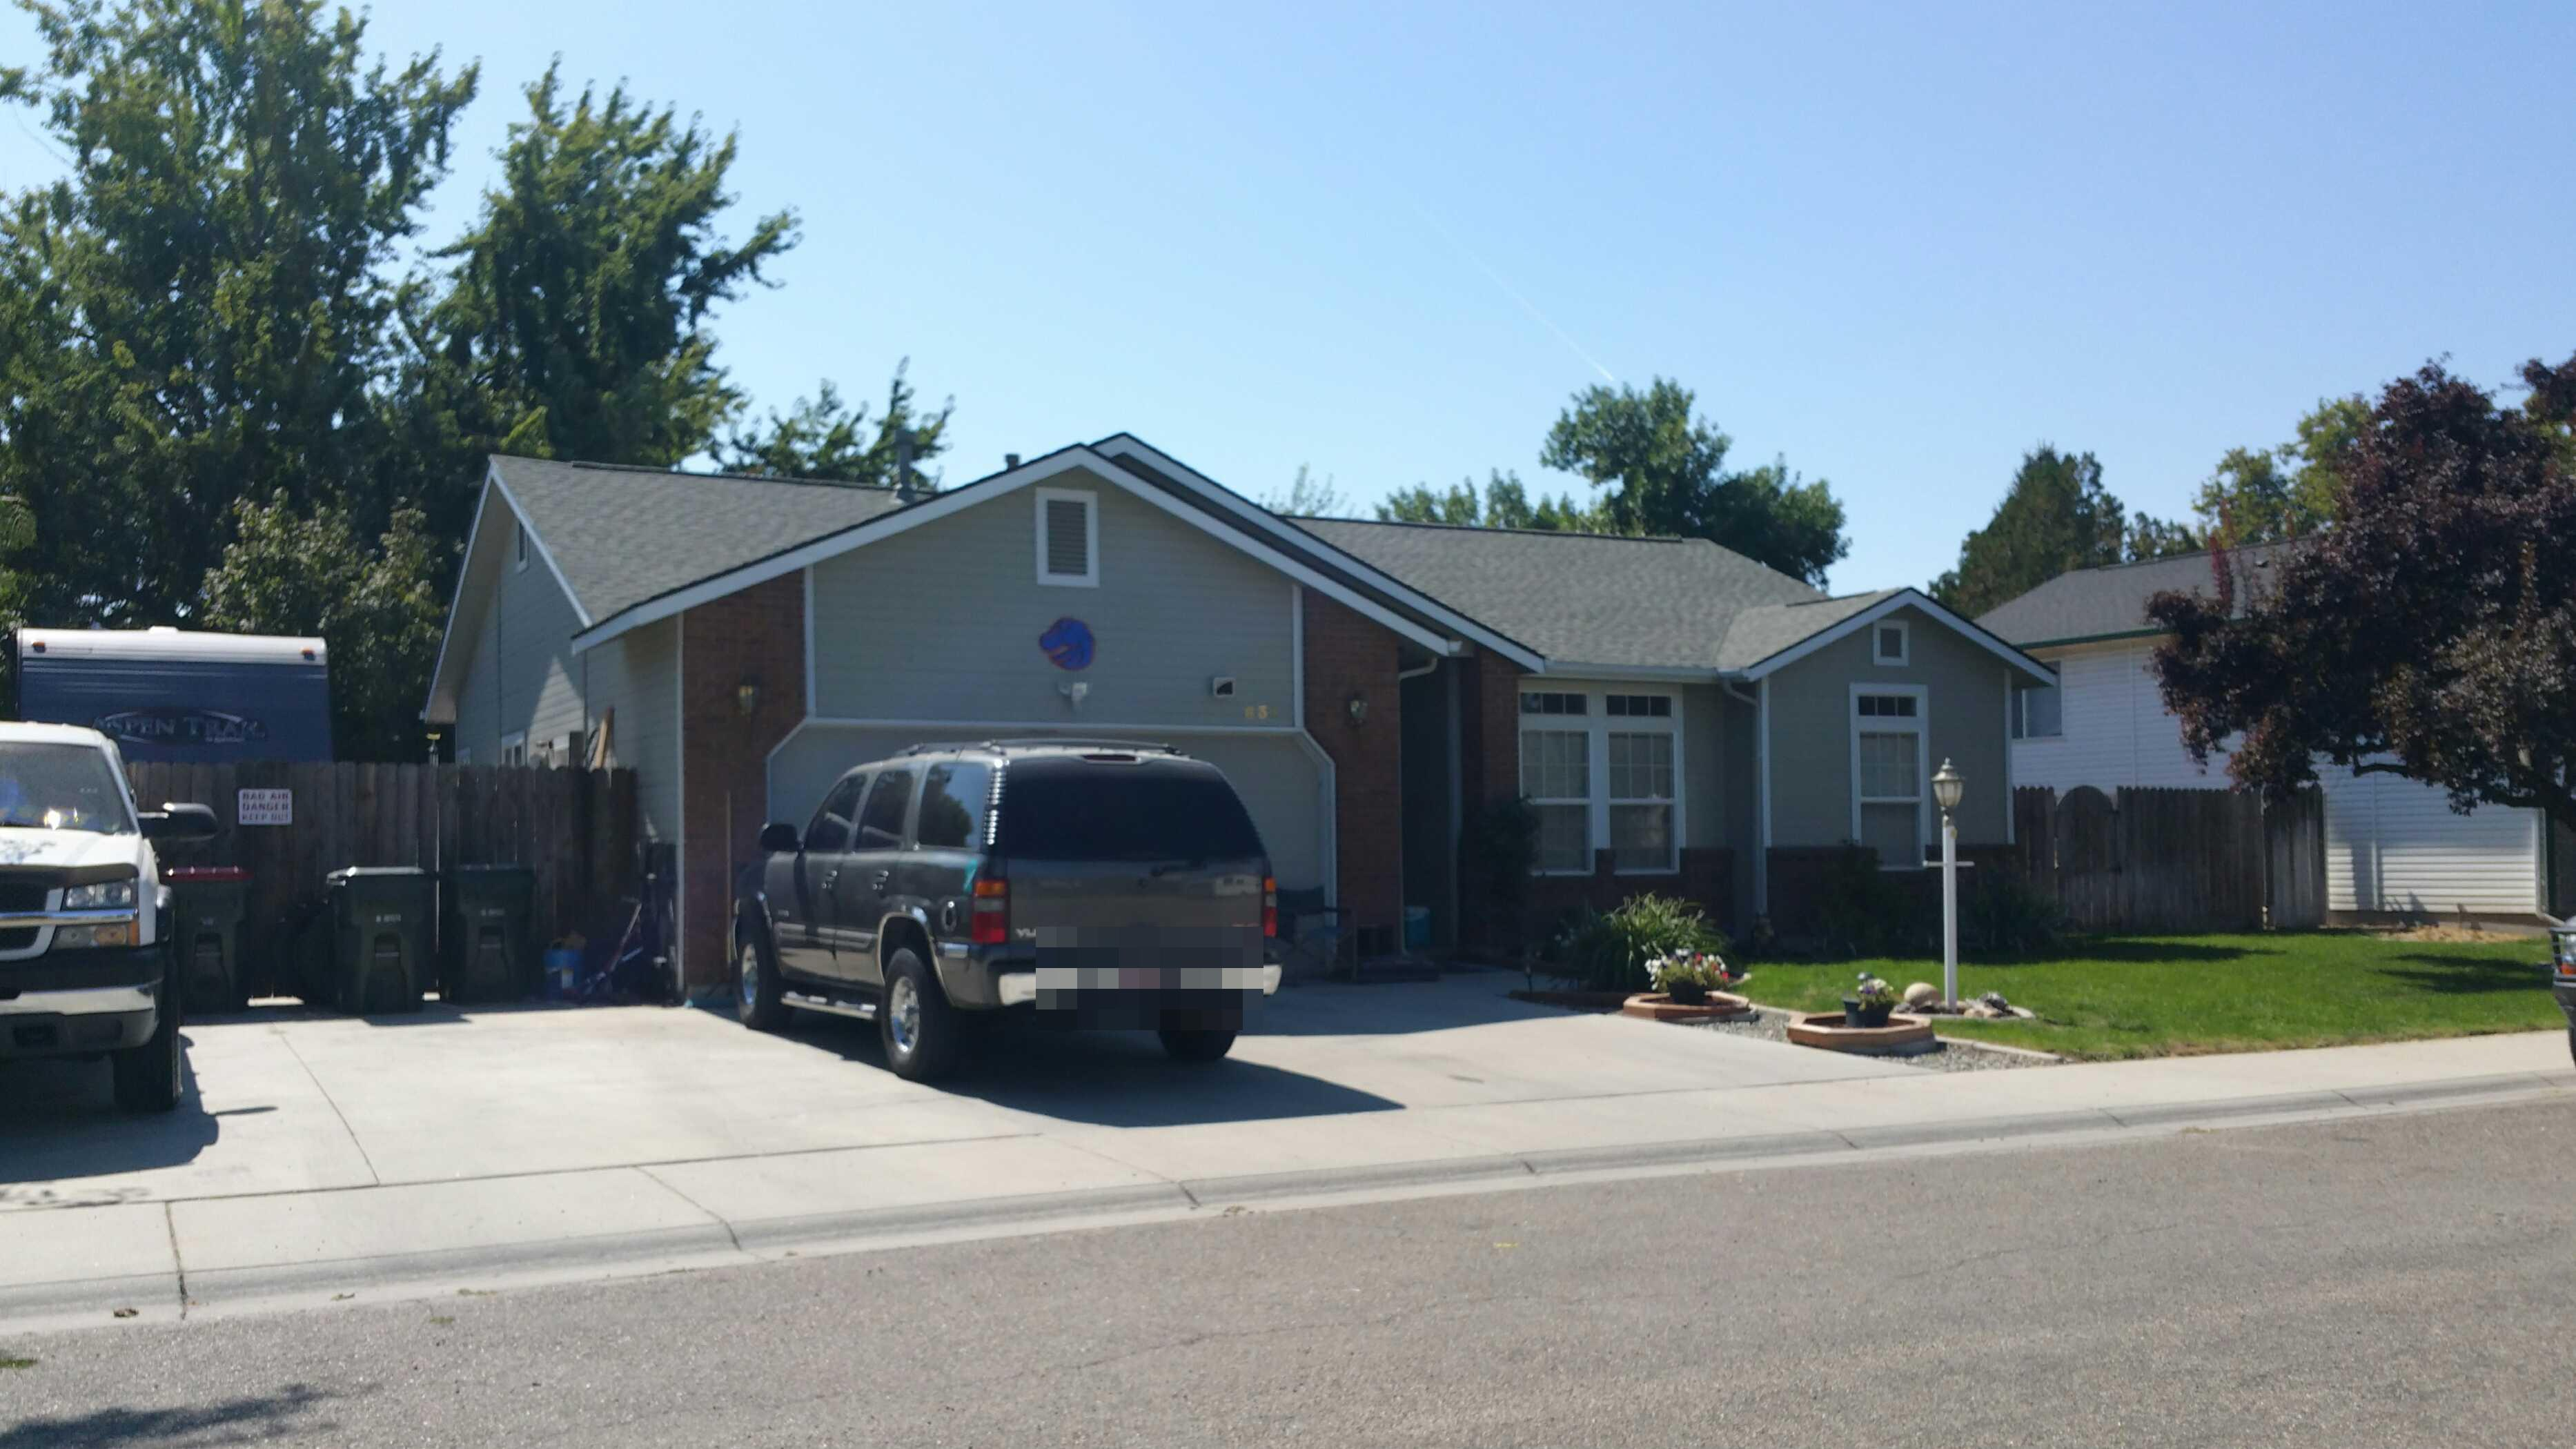 631 W Criterion St, Meridian, ID 83642